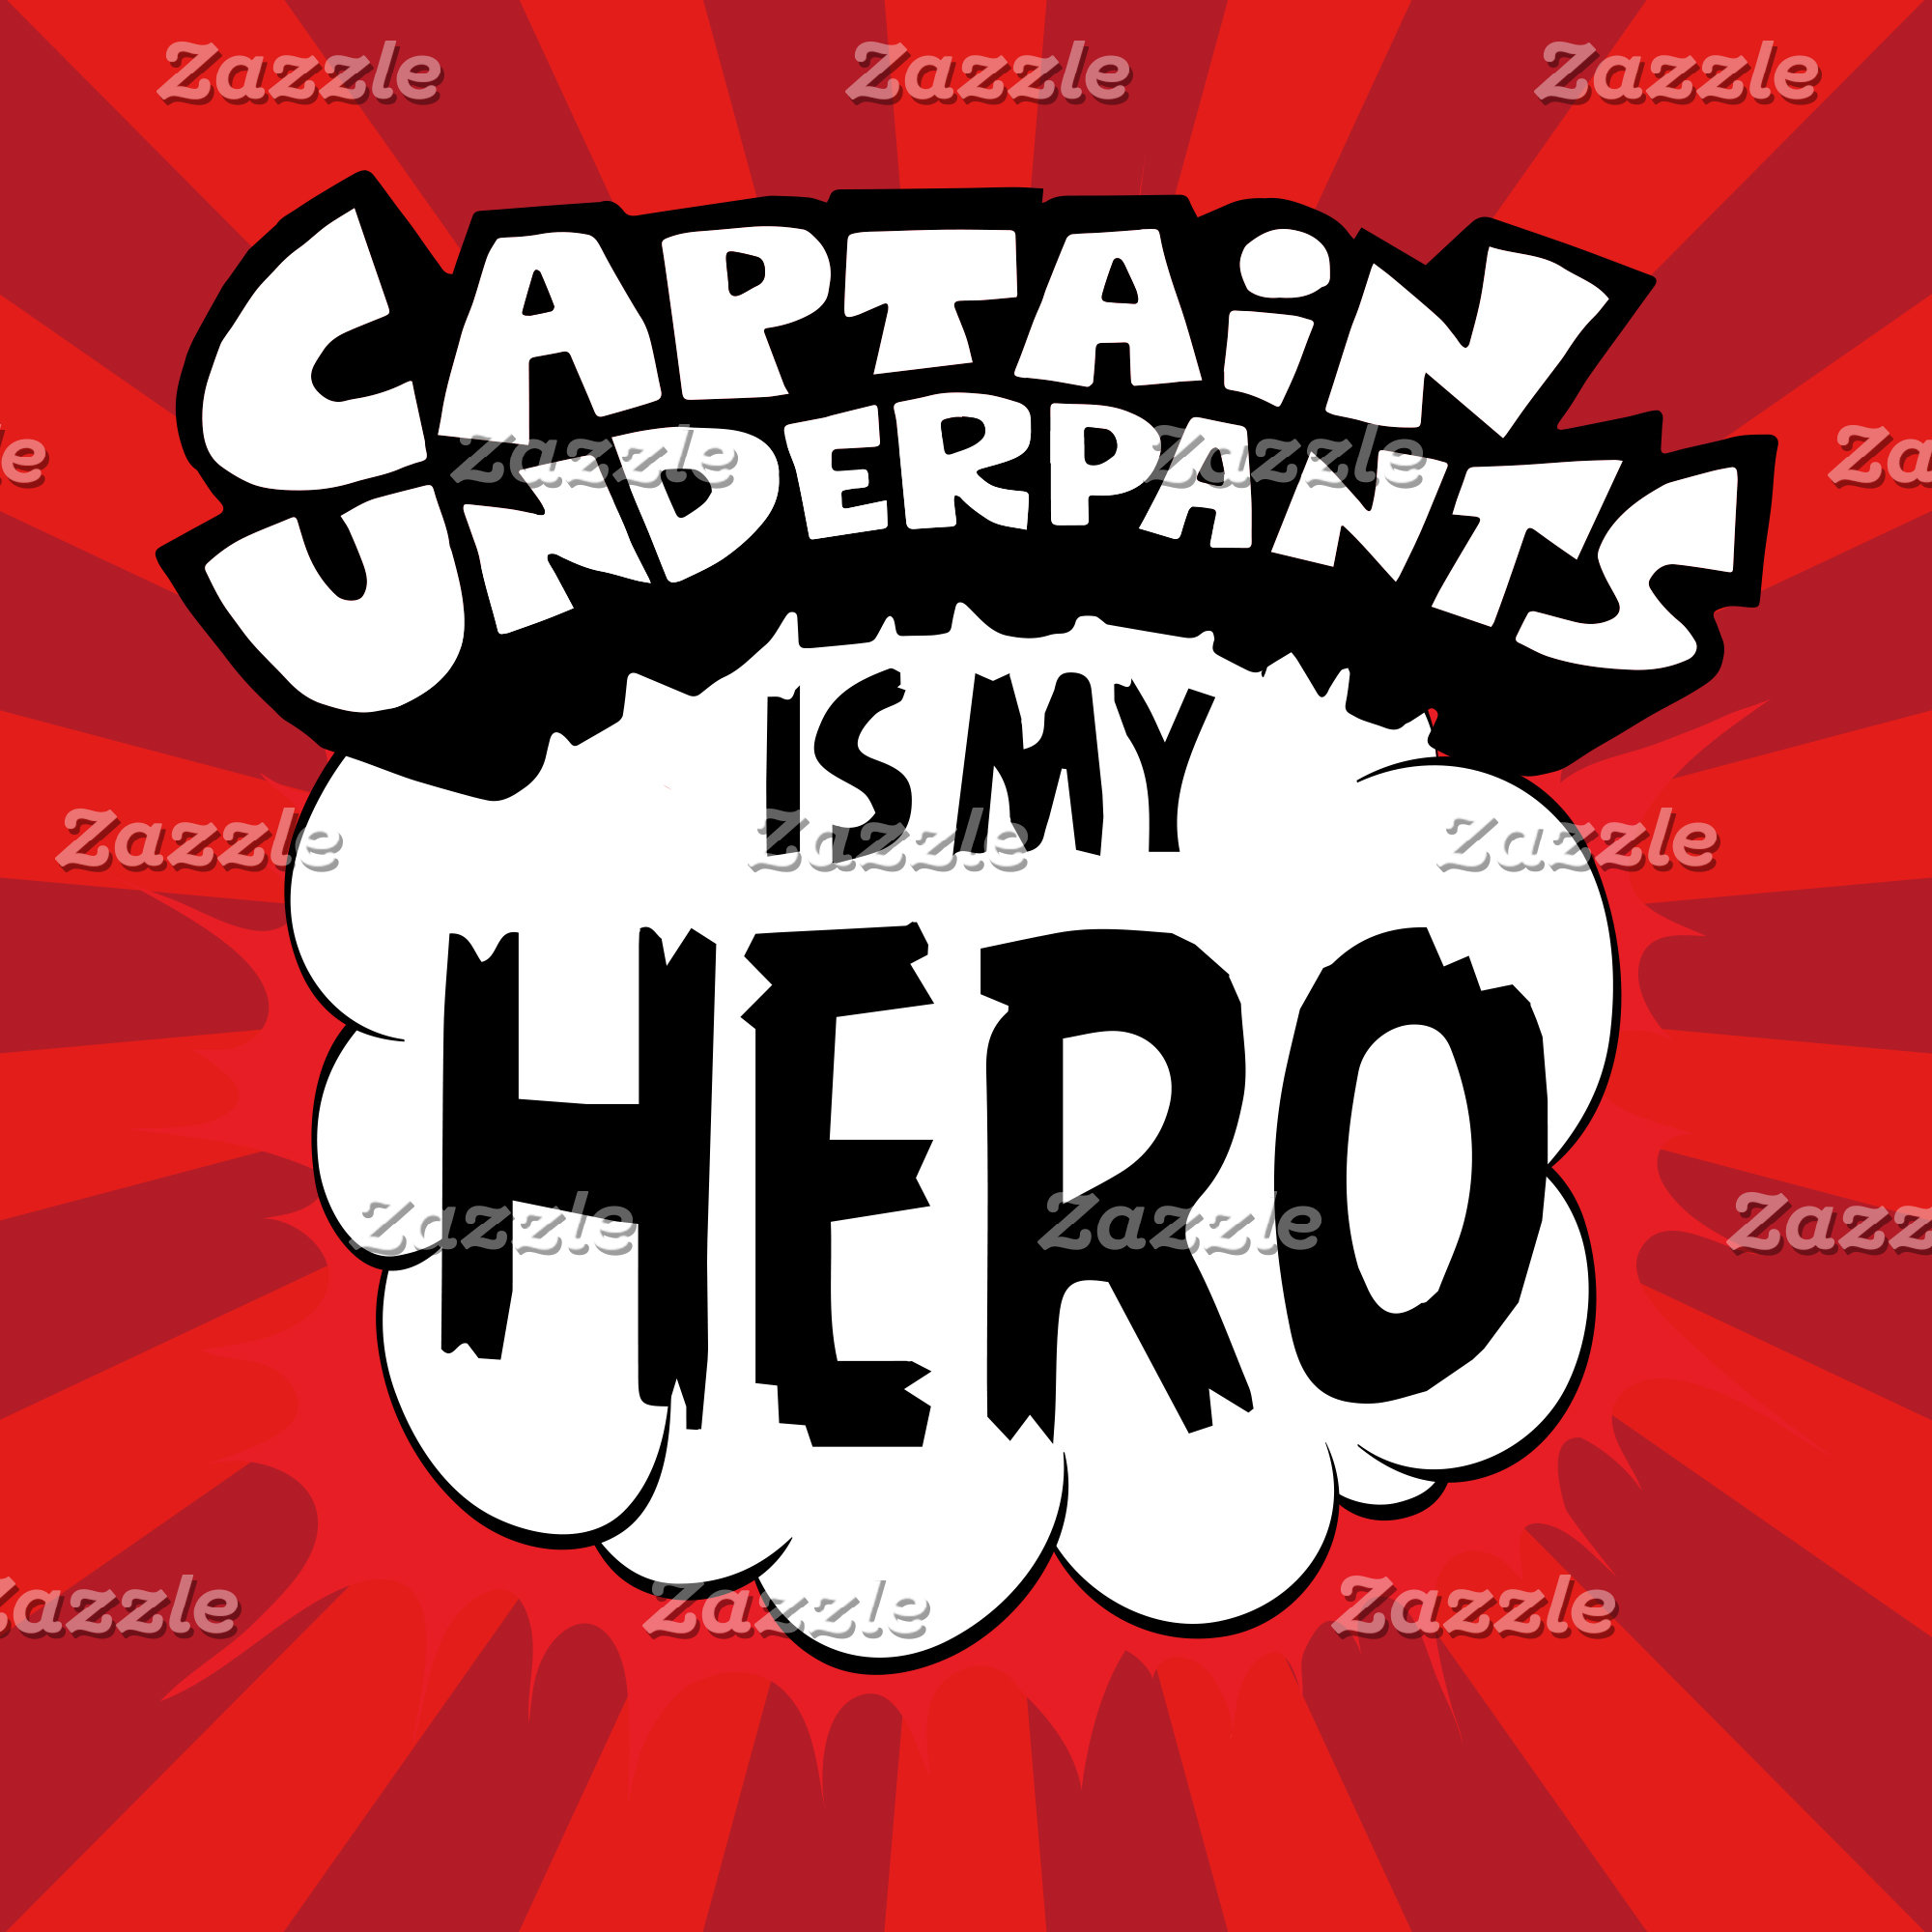 Captain Underpants Is My Hero